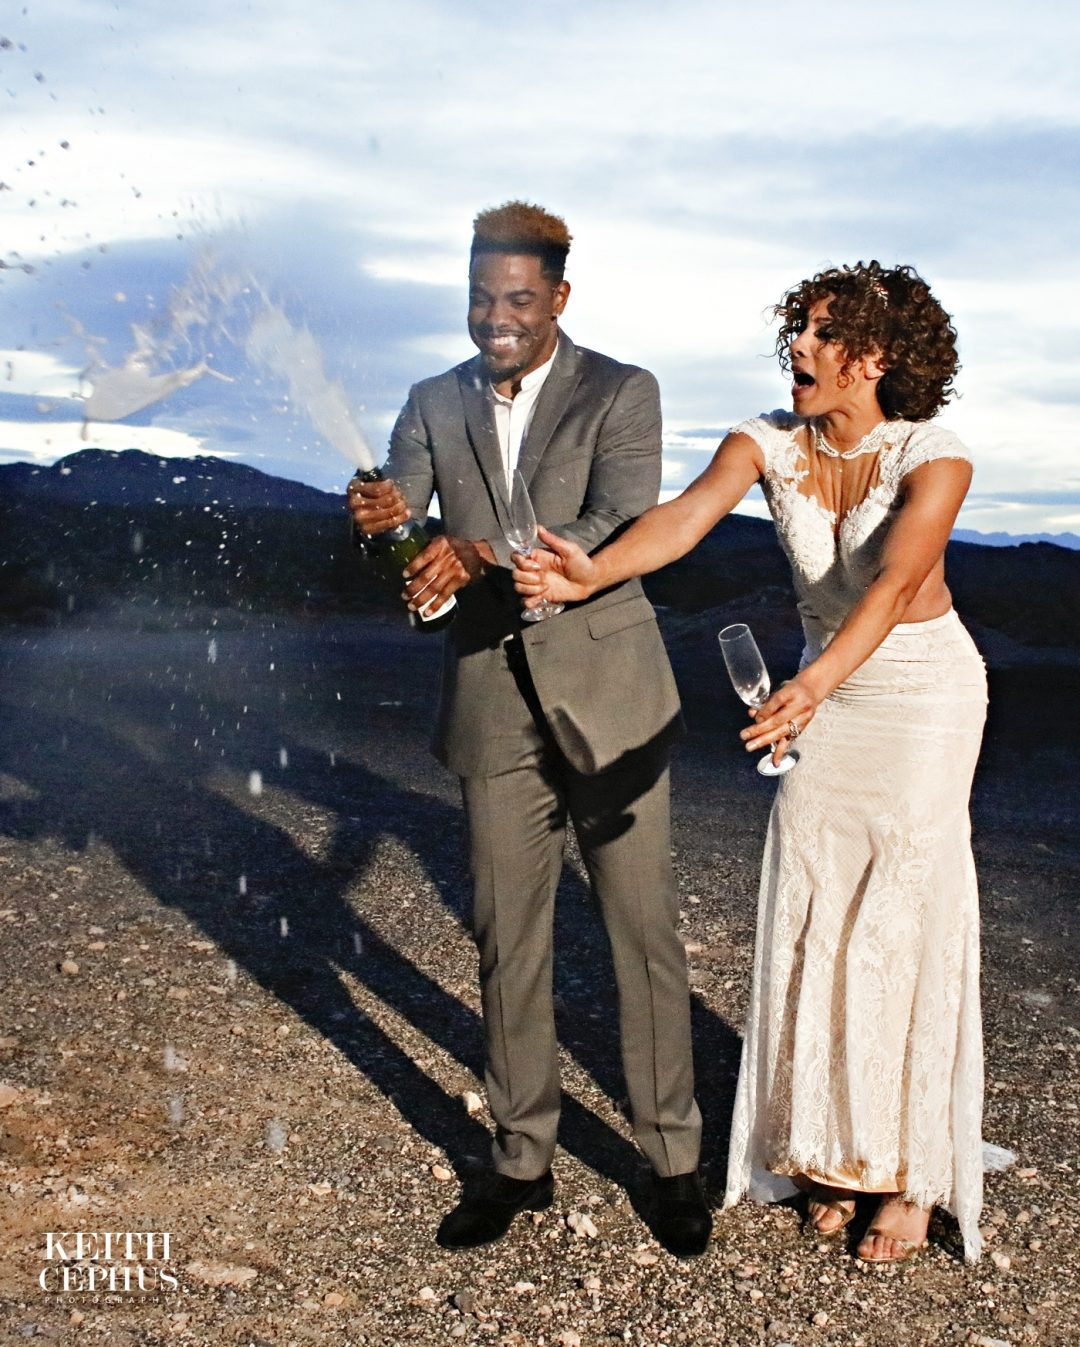 Wedding Styled Photo Shoot with New York Jets CB Juston Burress and Former Miss United States Brittany Williams at the Valley of Fire in Las Vegas